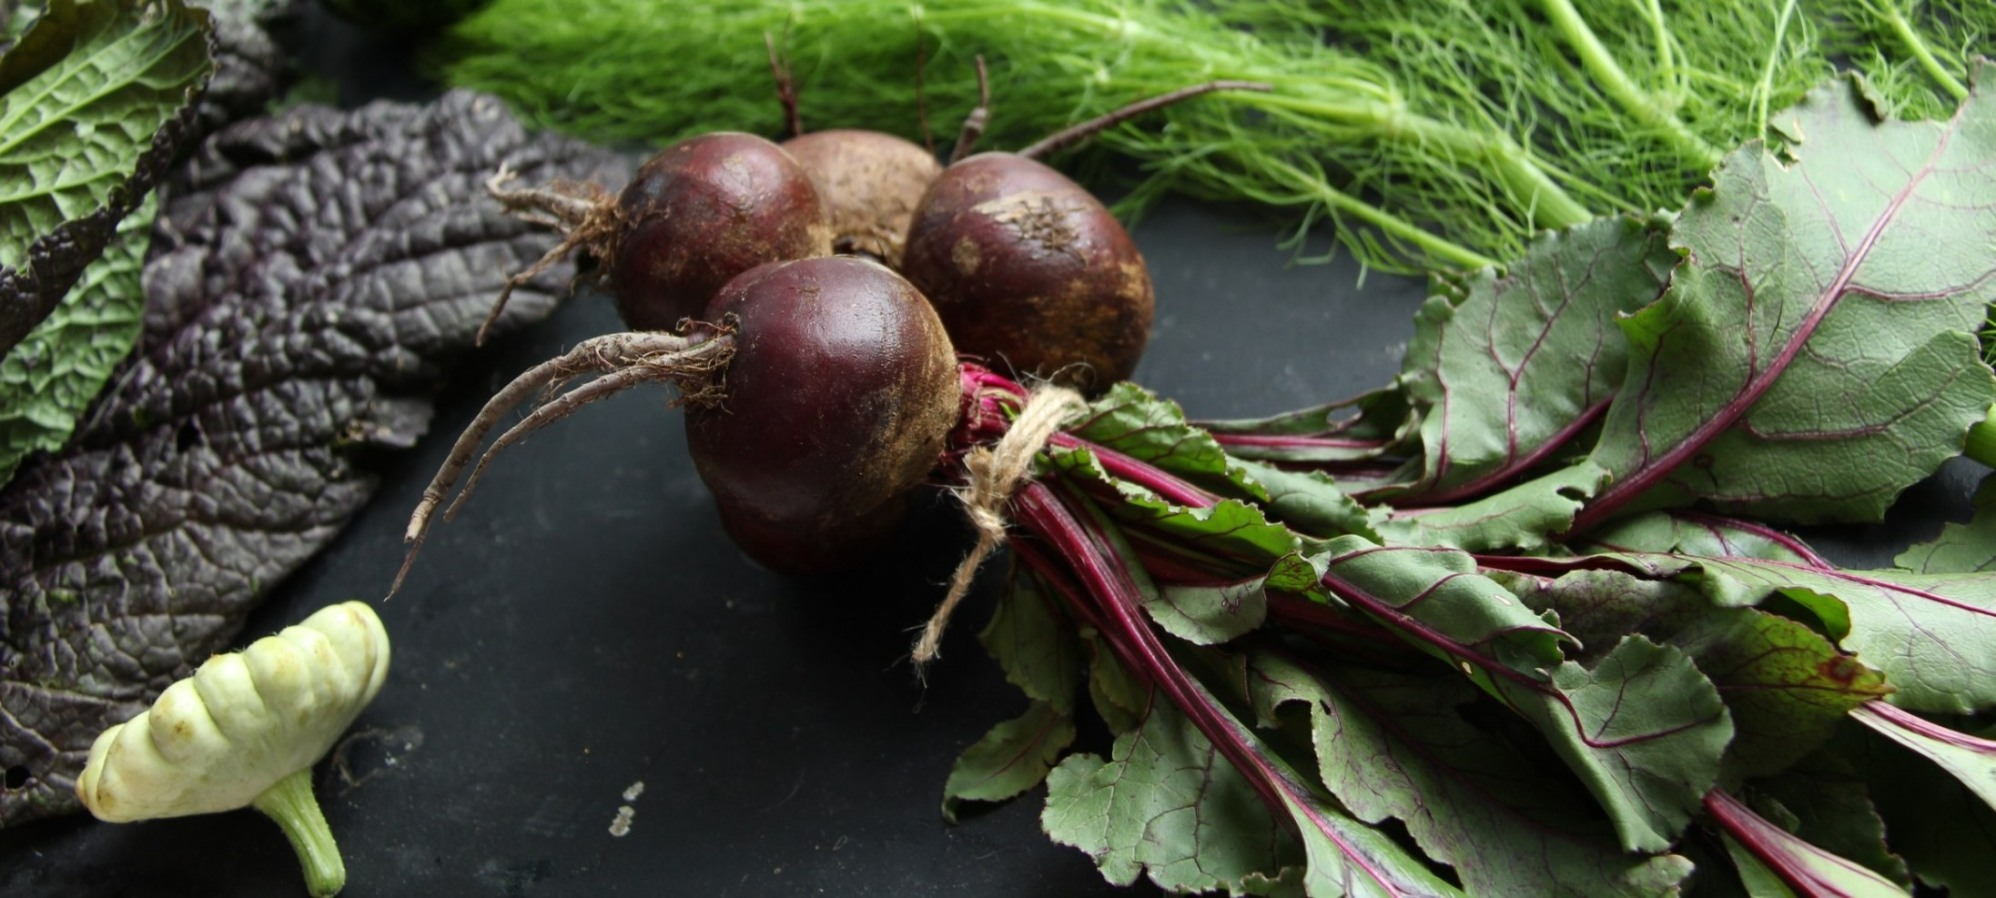 Purple whole beets with greens